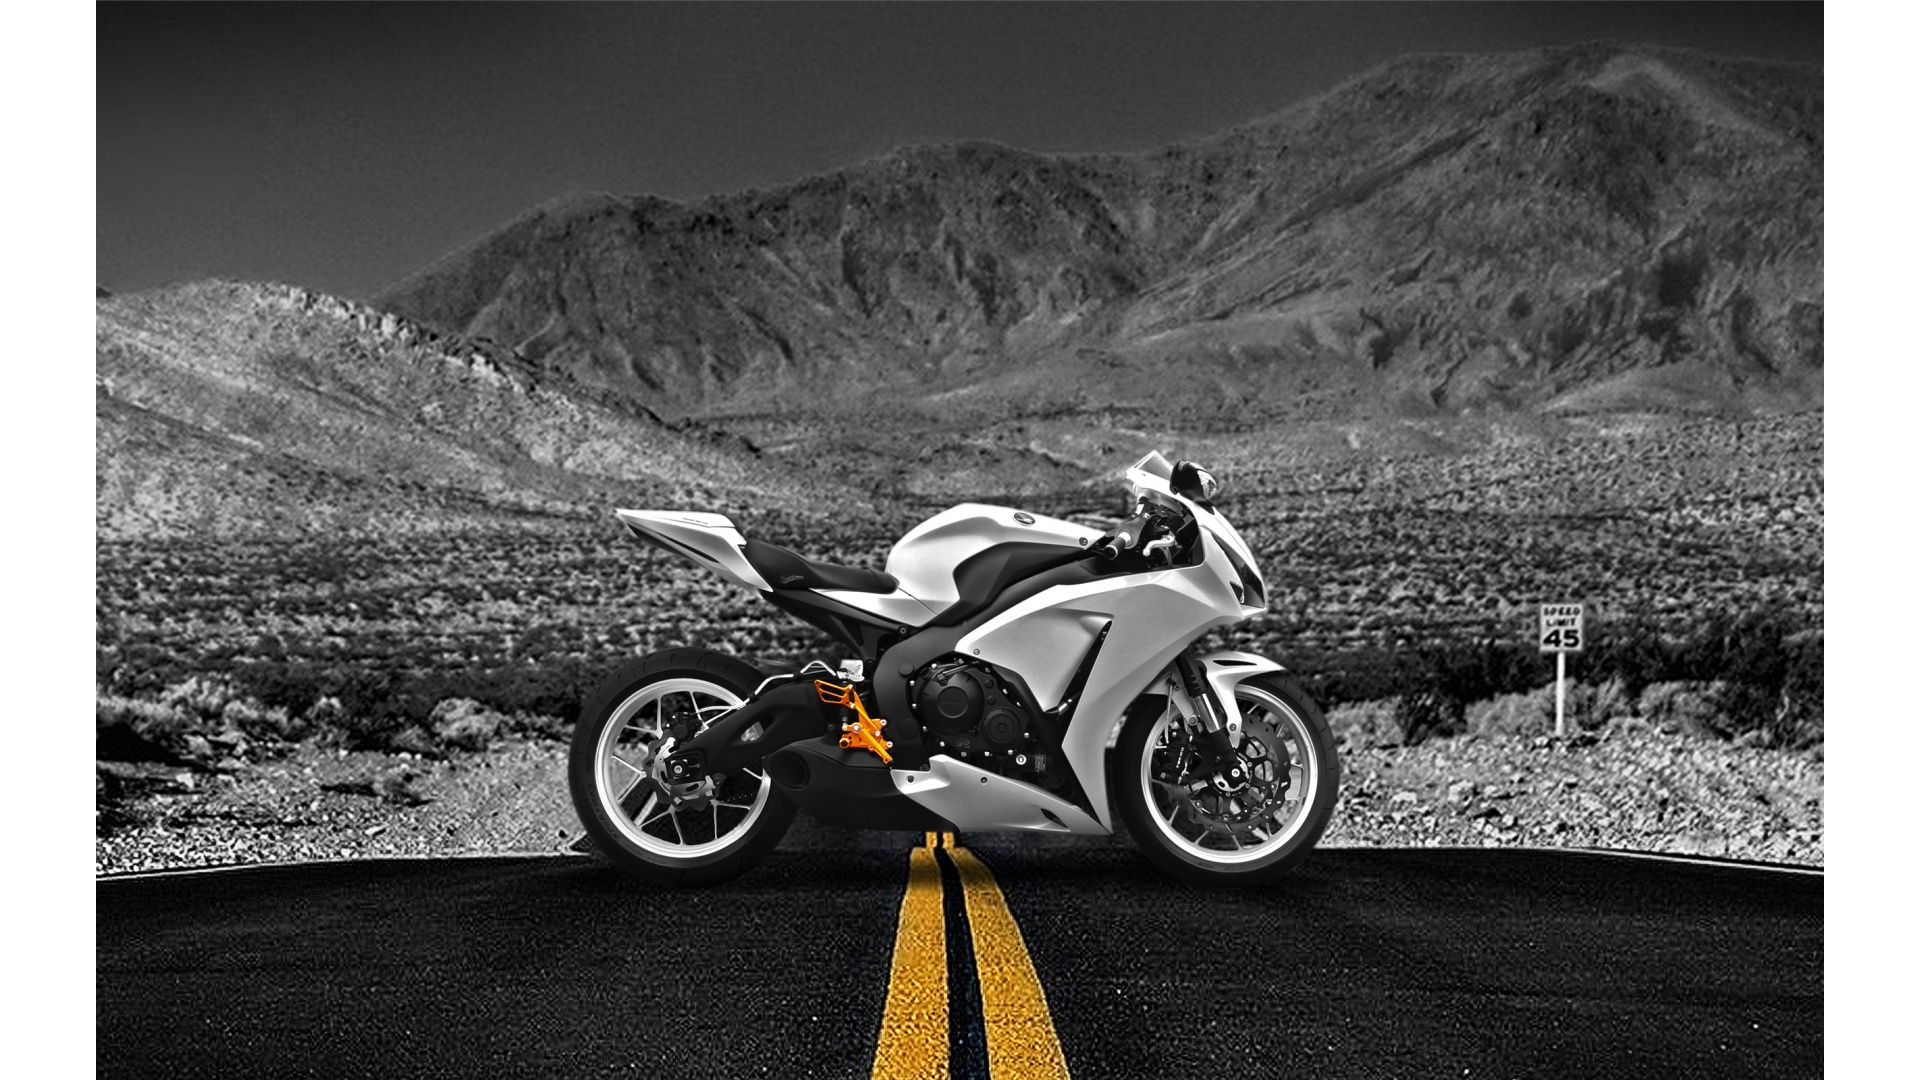 Are you looking for Honda CBR1000RR HD Wallpapers